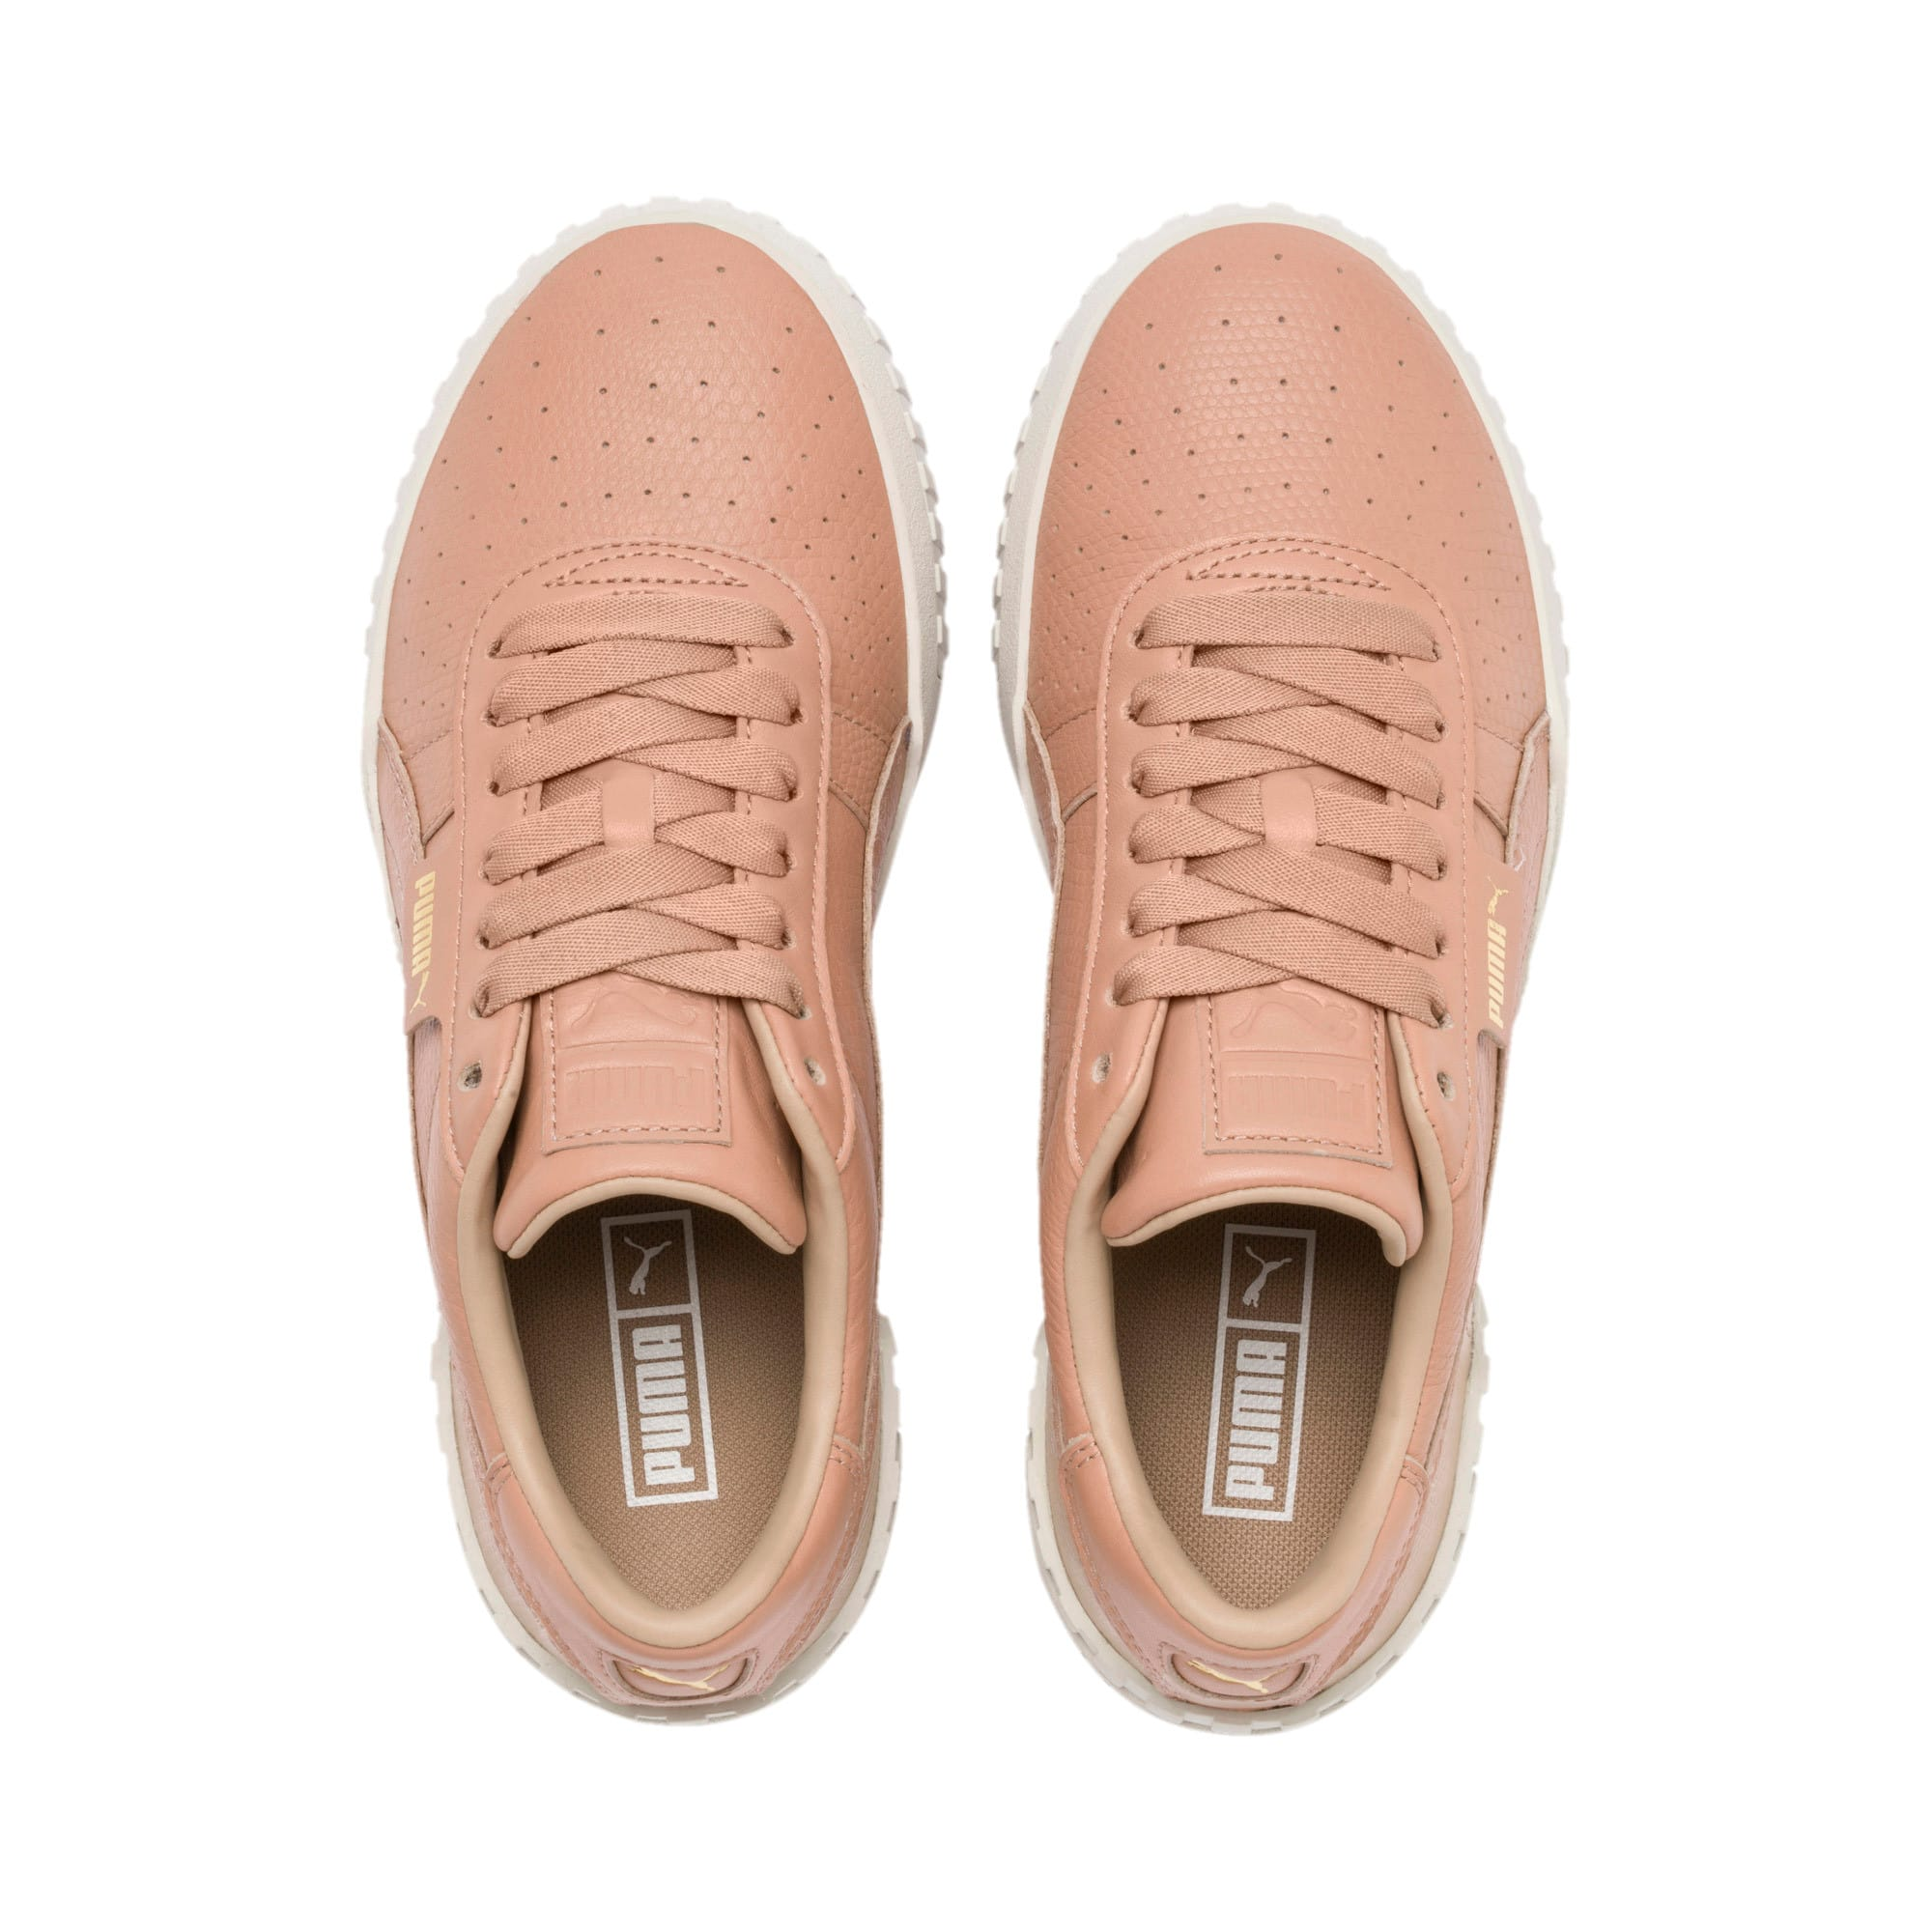 Thumbnail 7 of Cali Emboss Women's Trainers, Nougat, medium